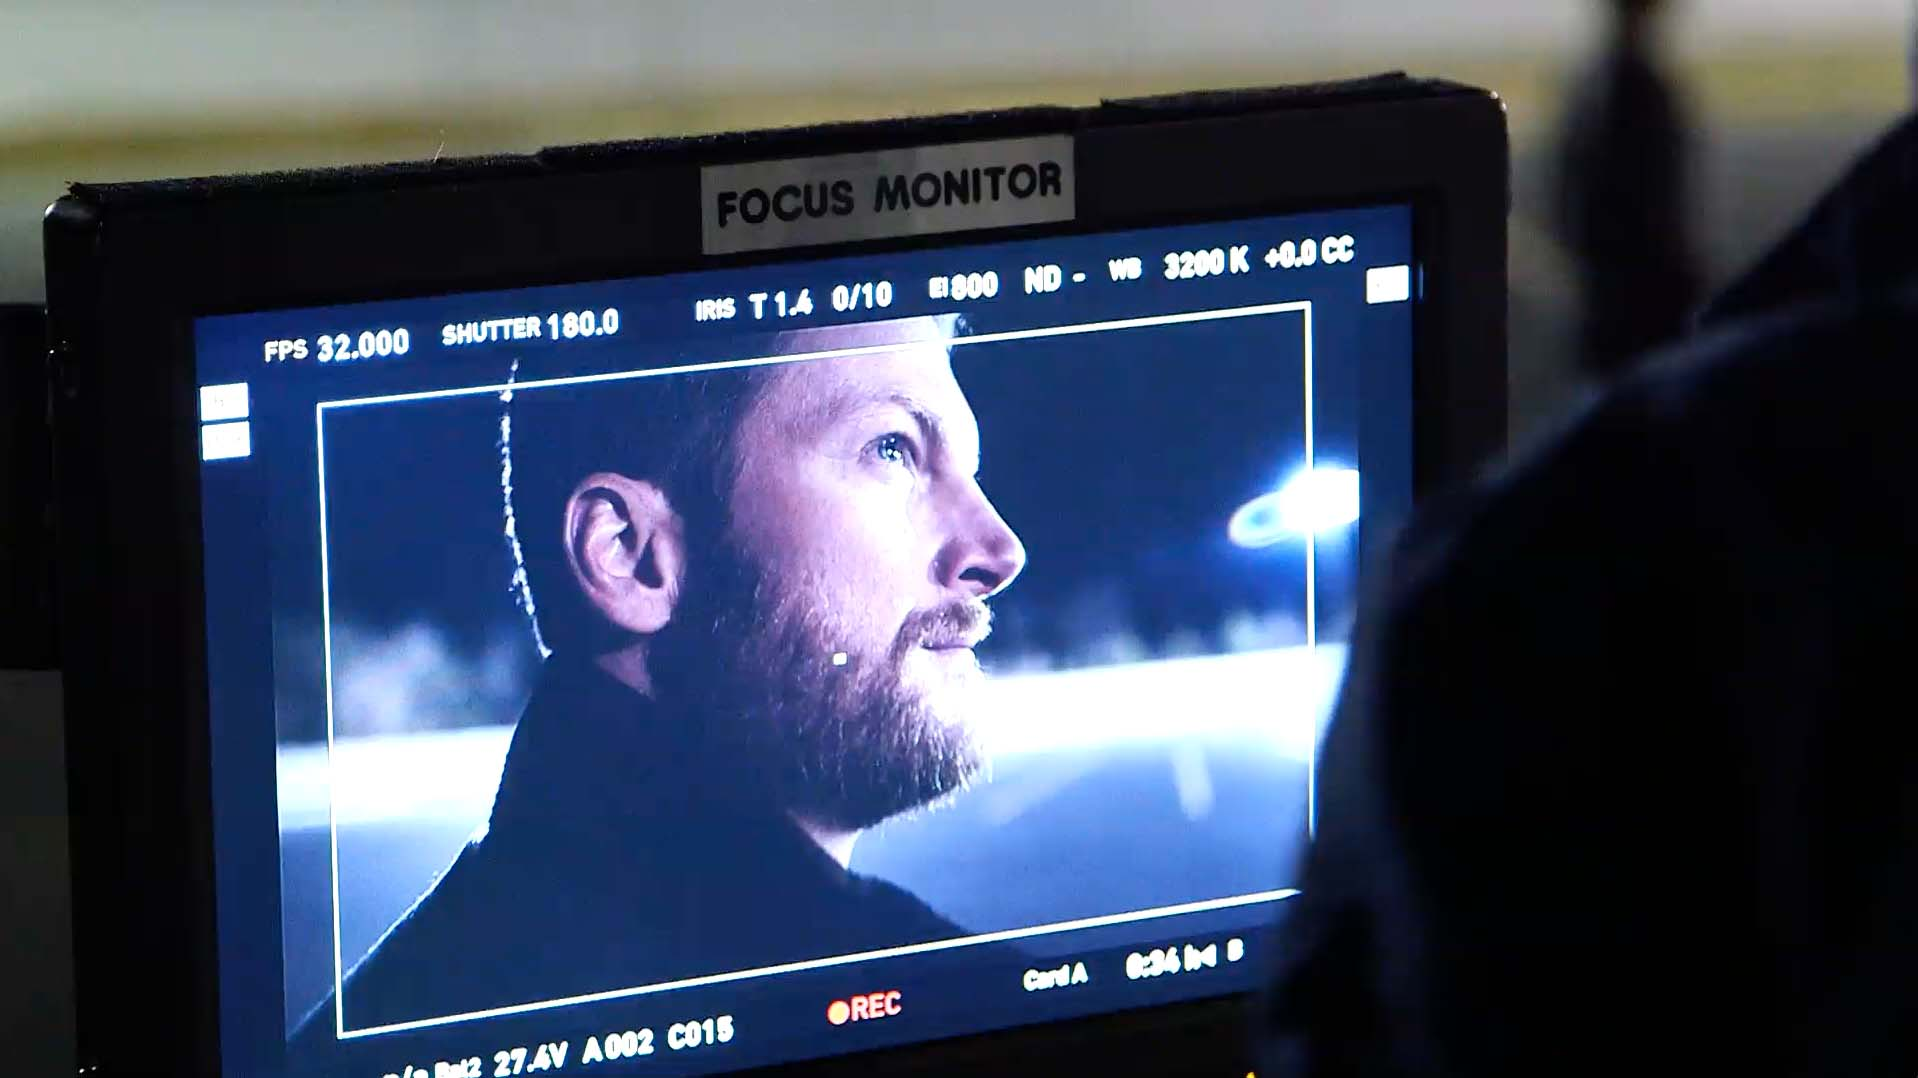 Dale Jr. films his first Goodyear commercial, 'Made.' Through a new relationship, the NASCAR star will serve as the featured expert who chooses Goodyear tires on and off the track.